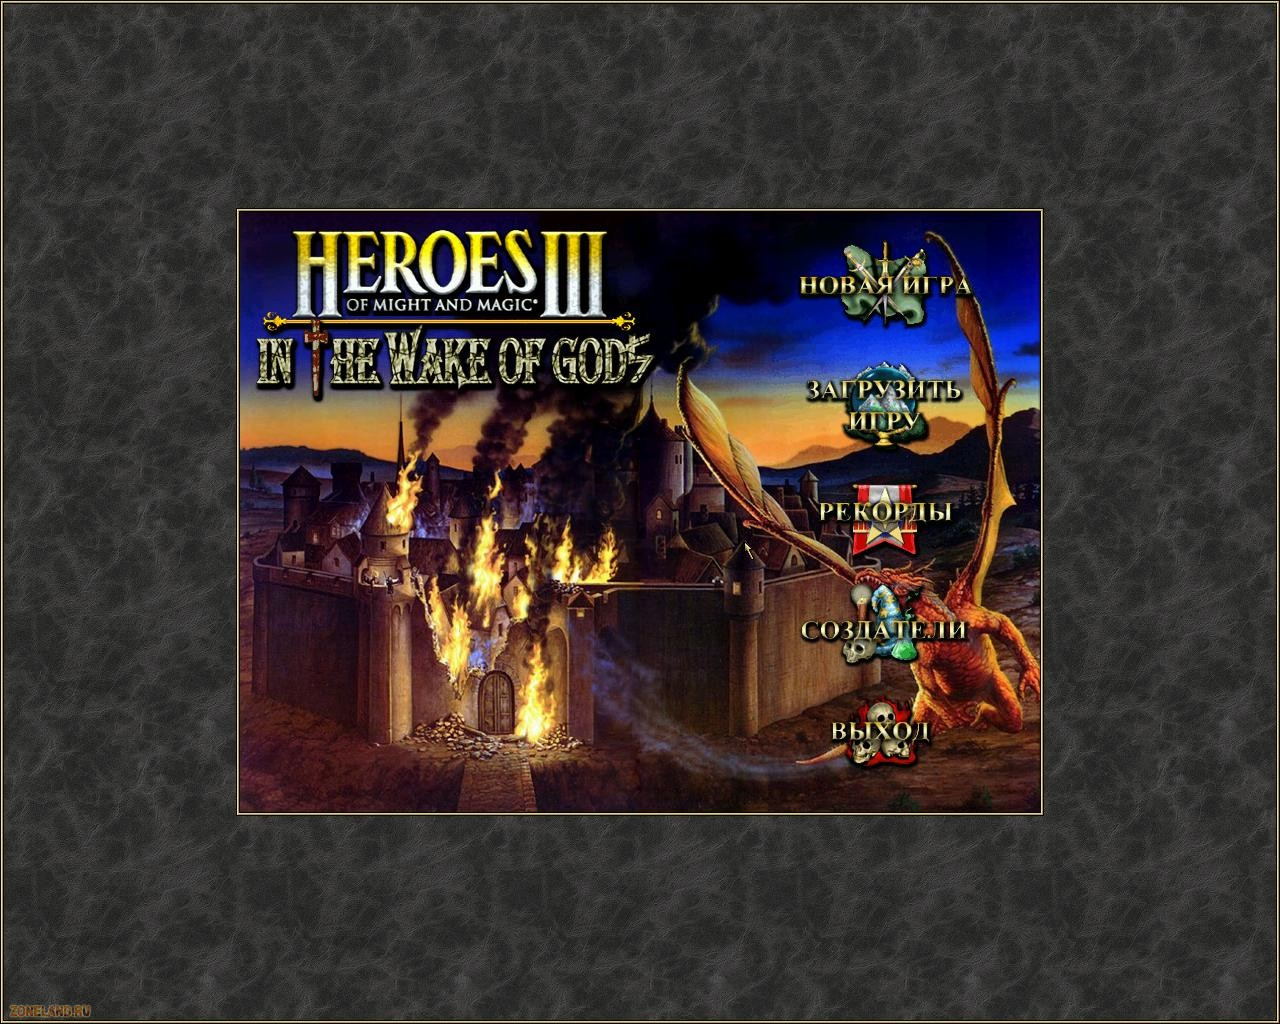 Heroes 3 1/2 in the Wake of Gods - это неофициальный add-on